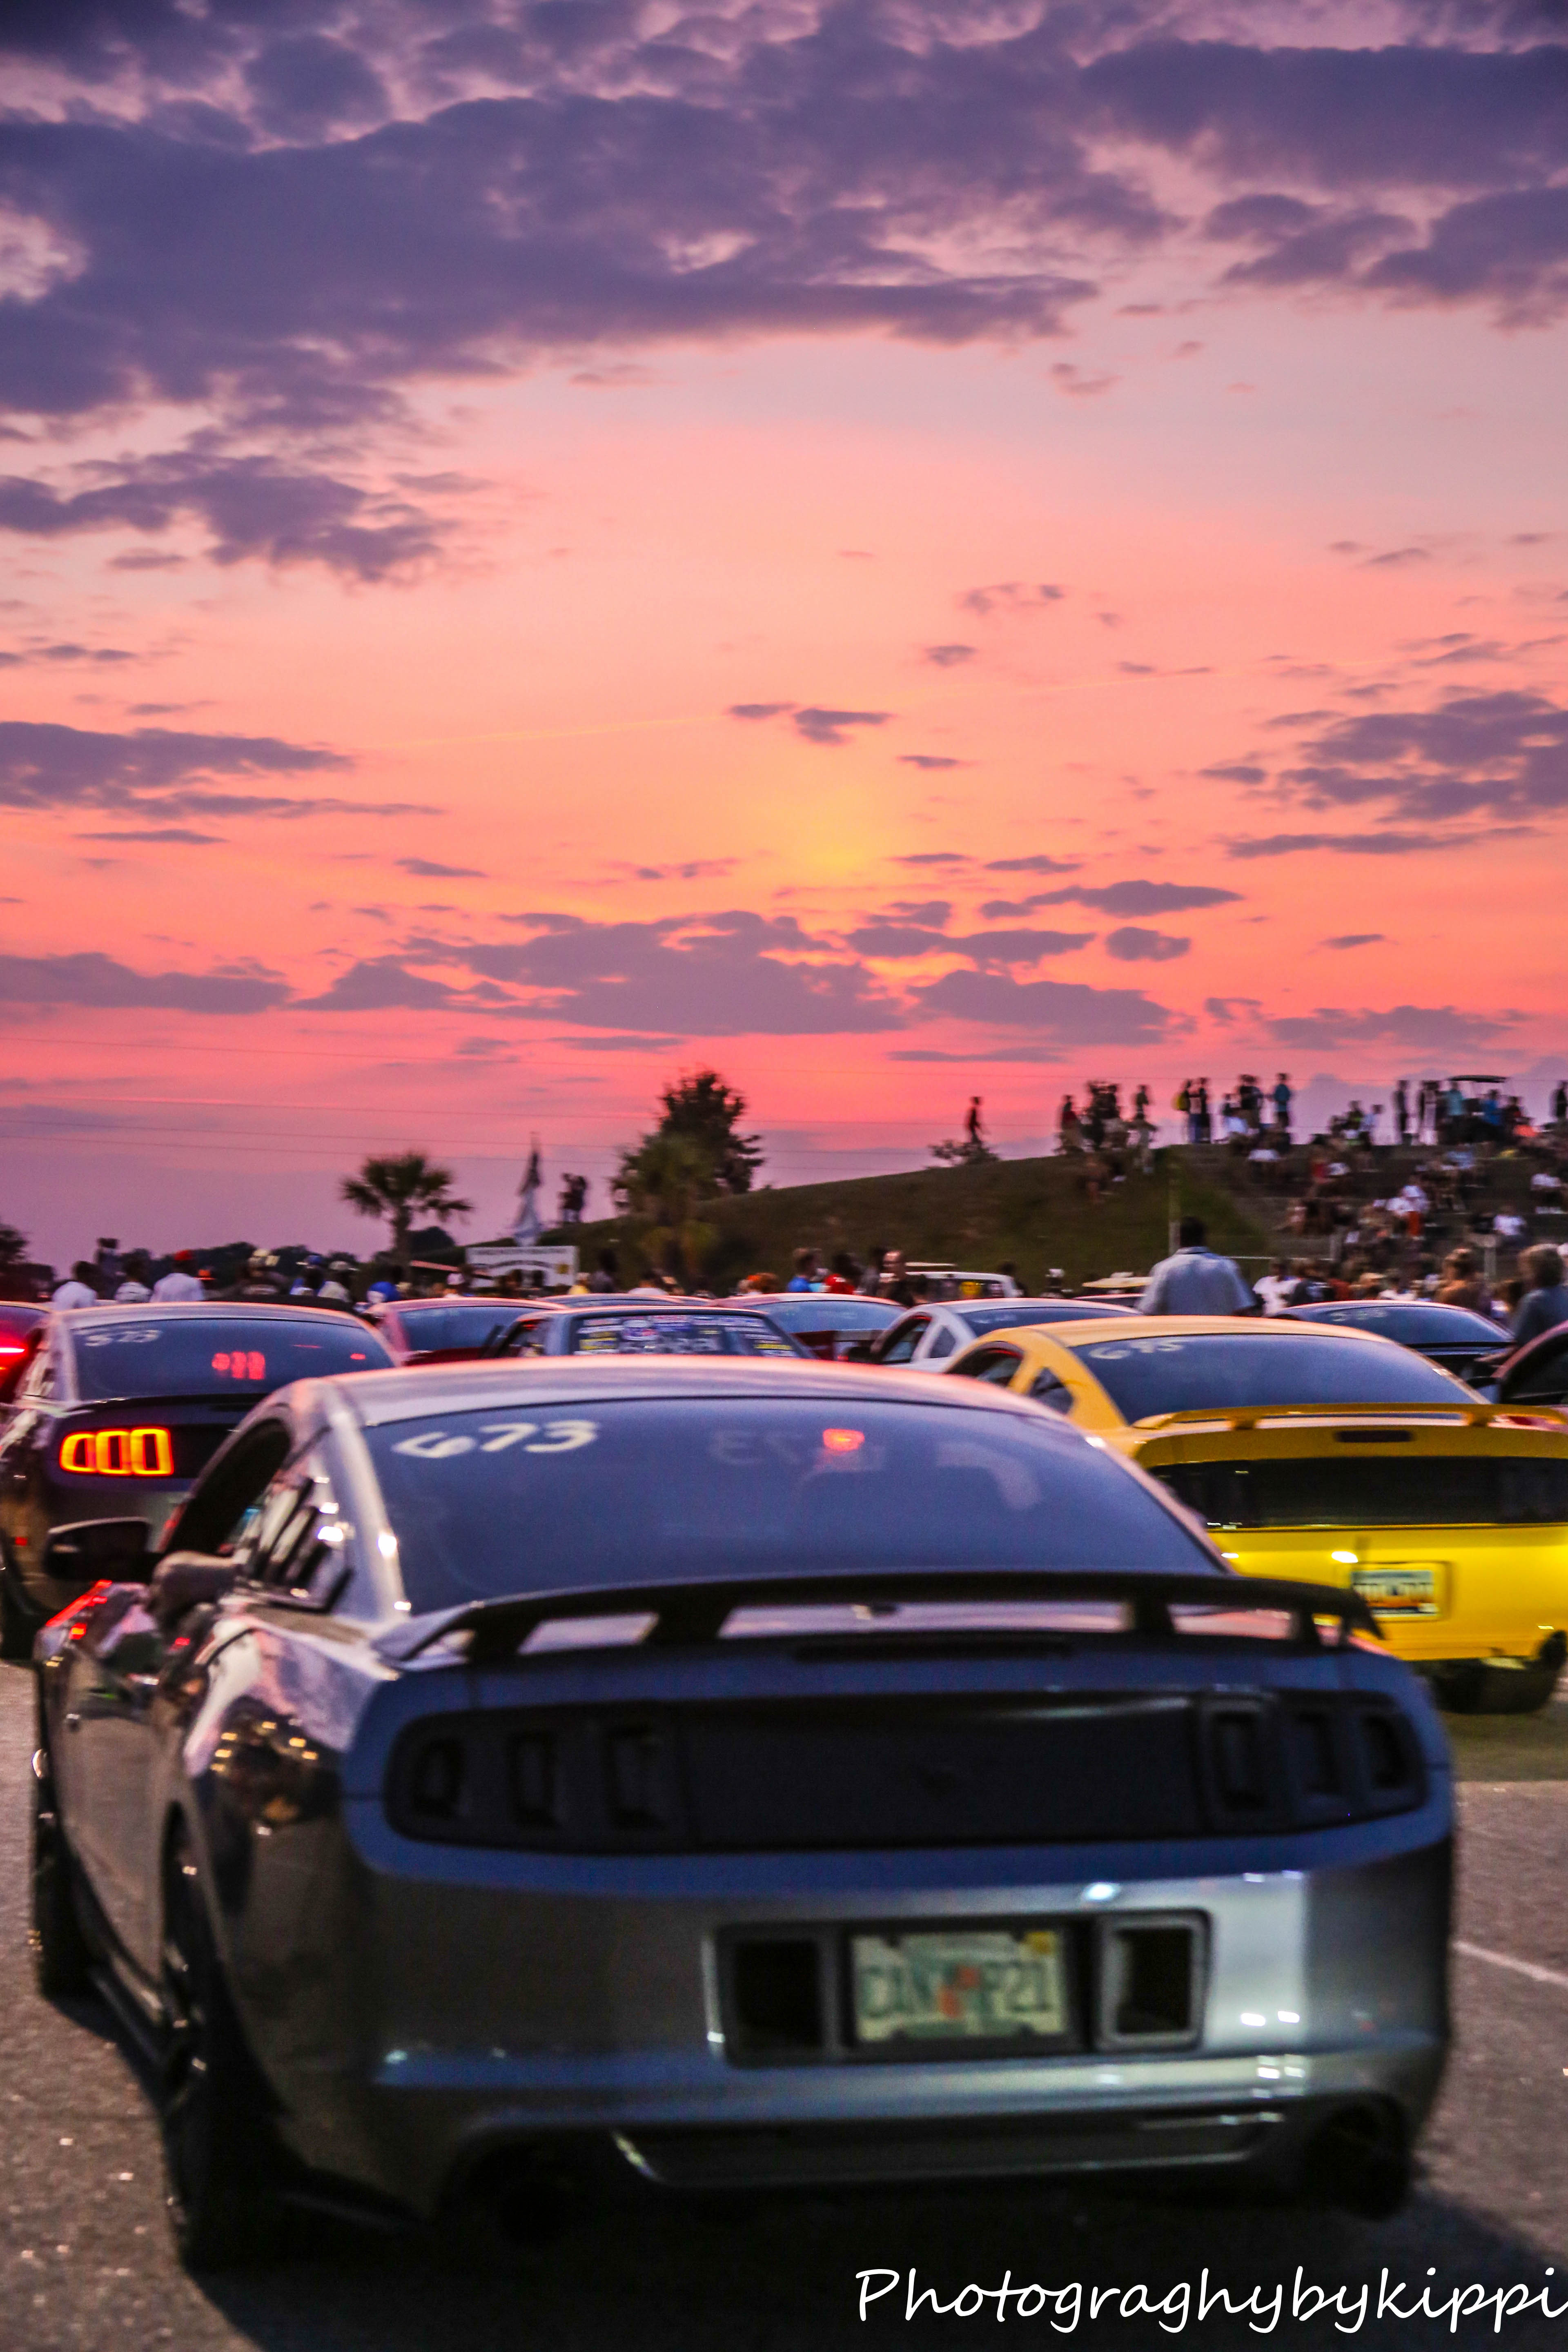 Click image for larger version  Name:Beast up to Race mustang week 2015 (1 of 1).jpg Views:33 Size:1.41 MB ID:187653